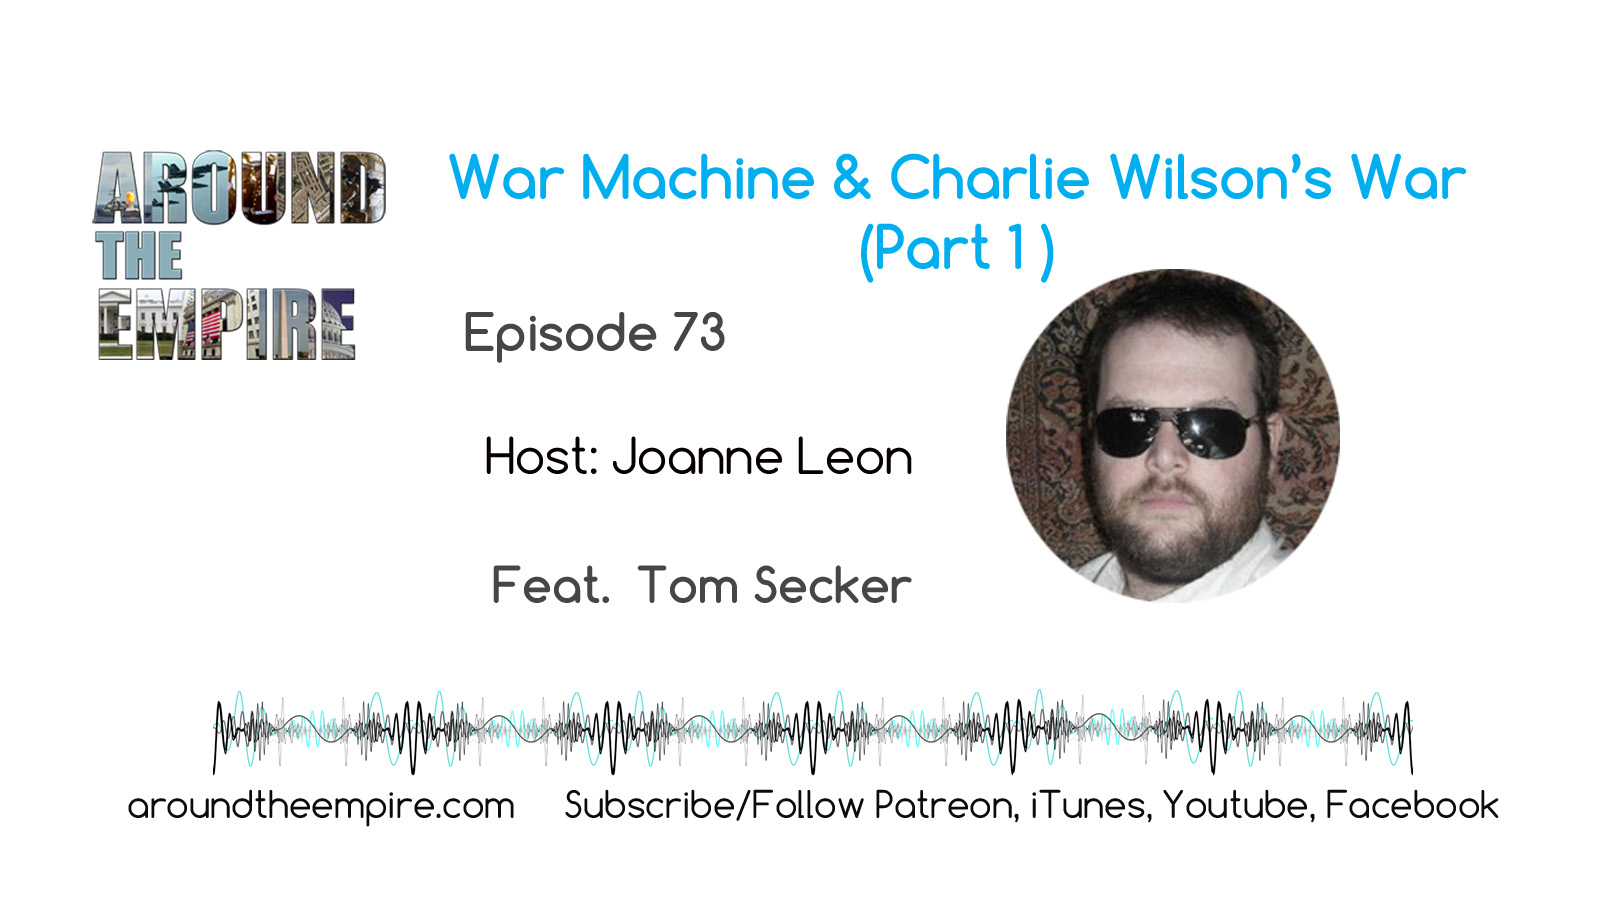 Ep 73 War Machine and Charlie Wilson's War Part 1 feat Tom Secker